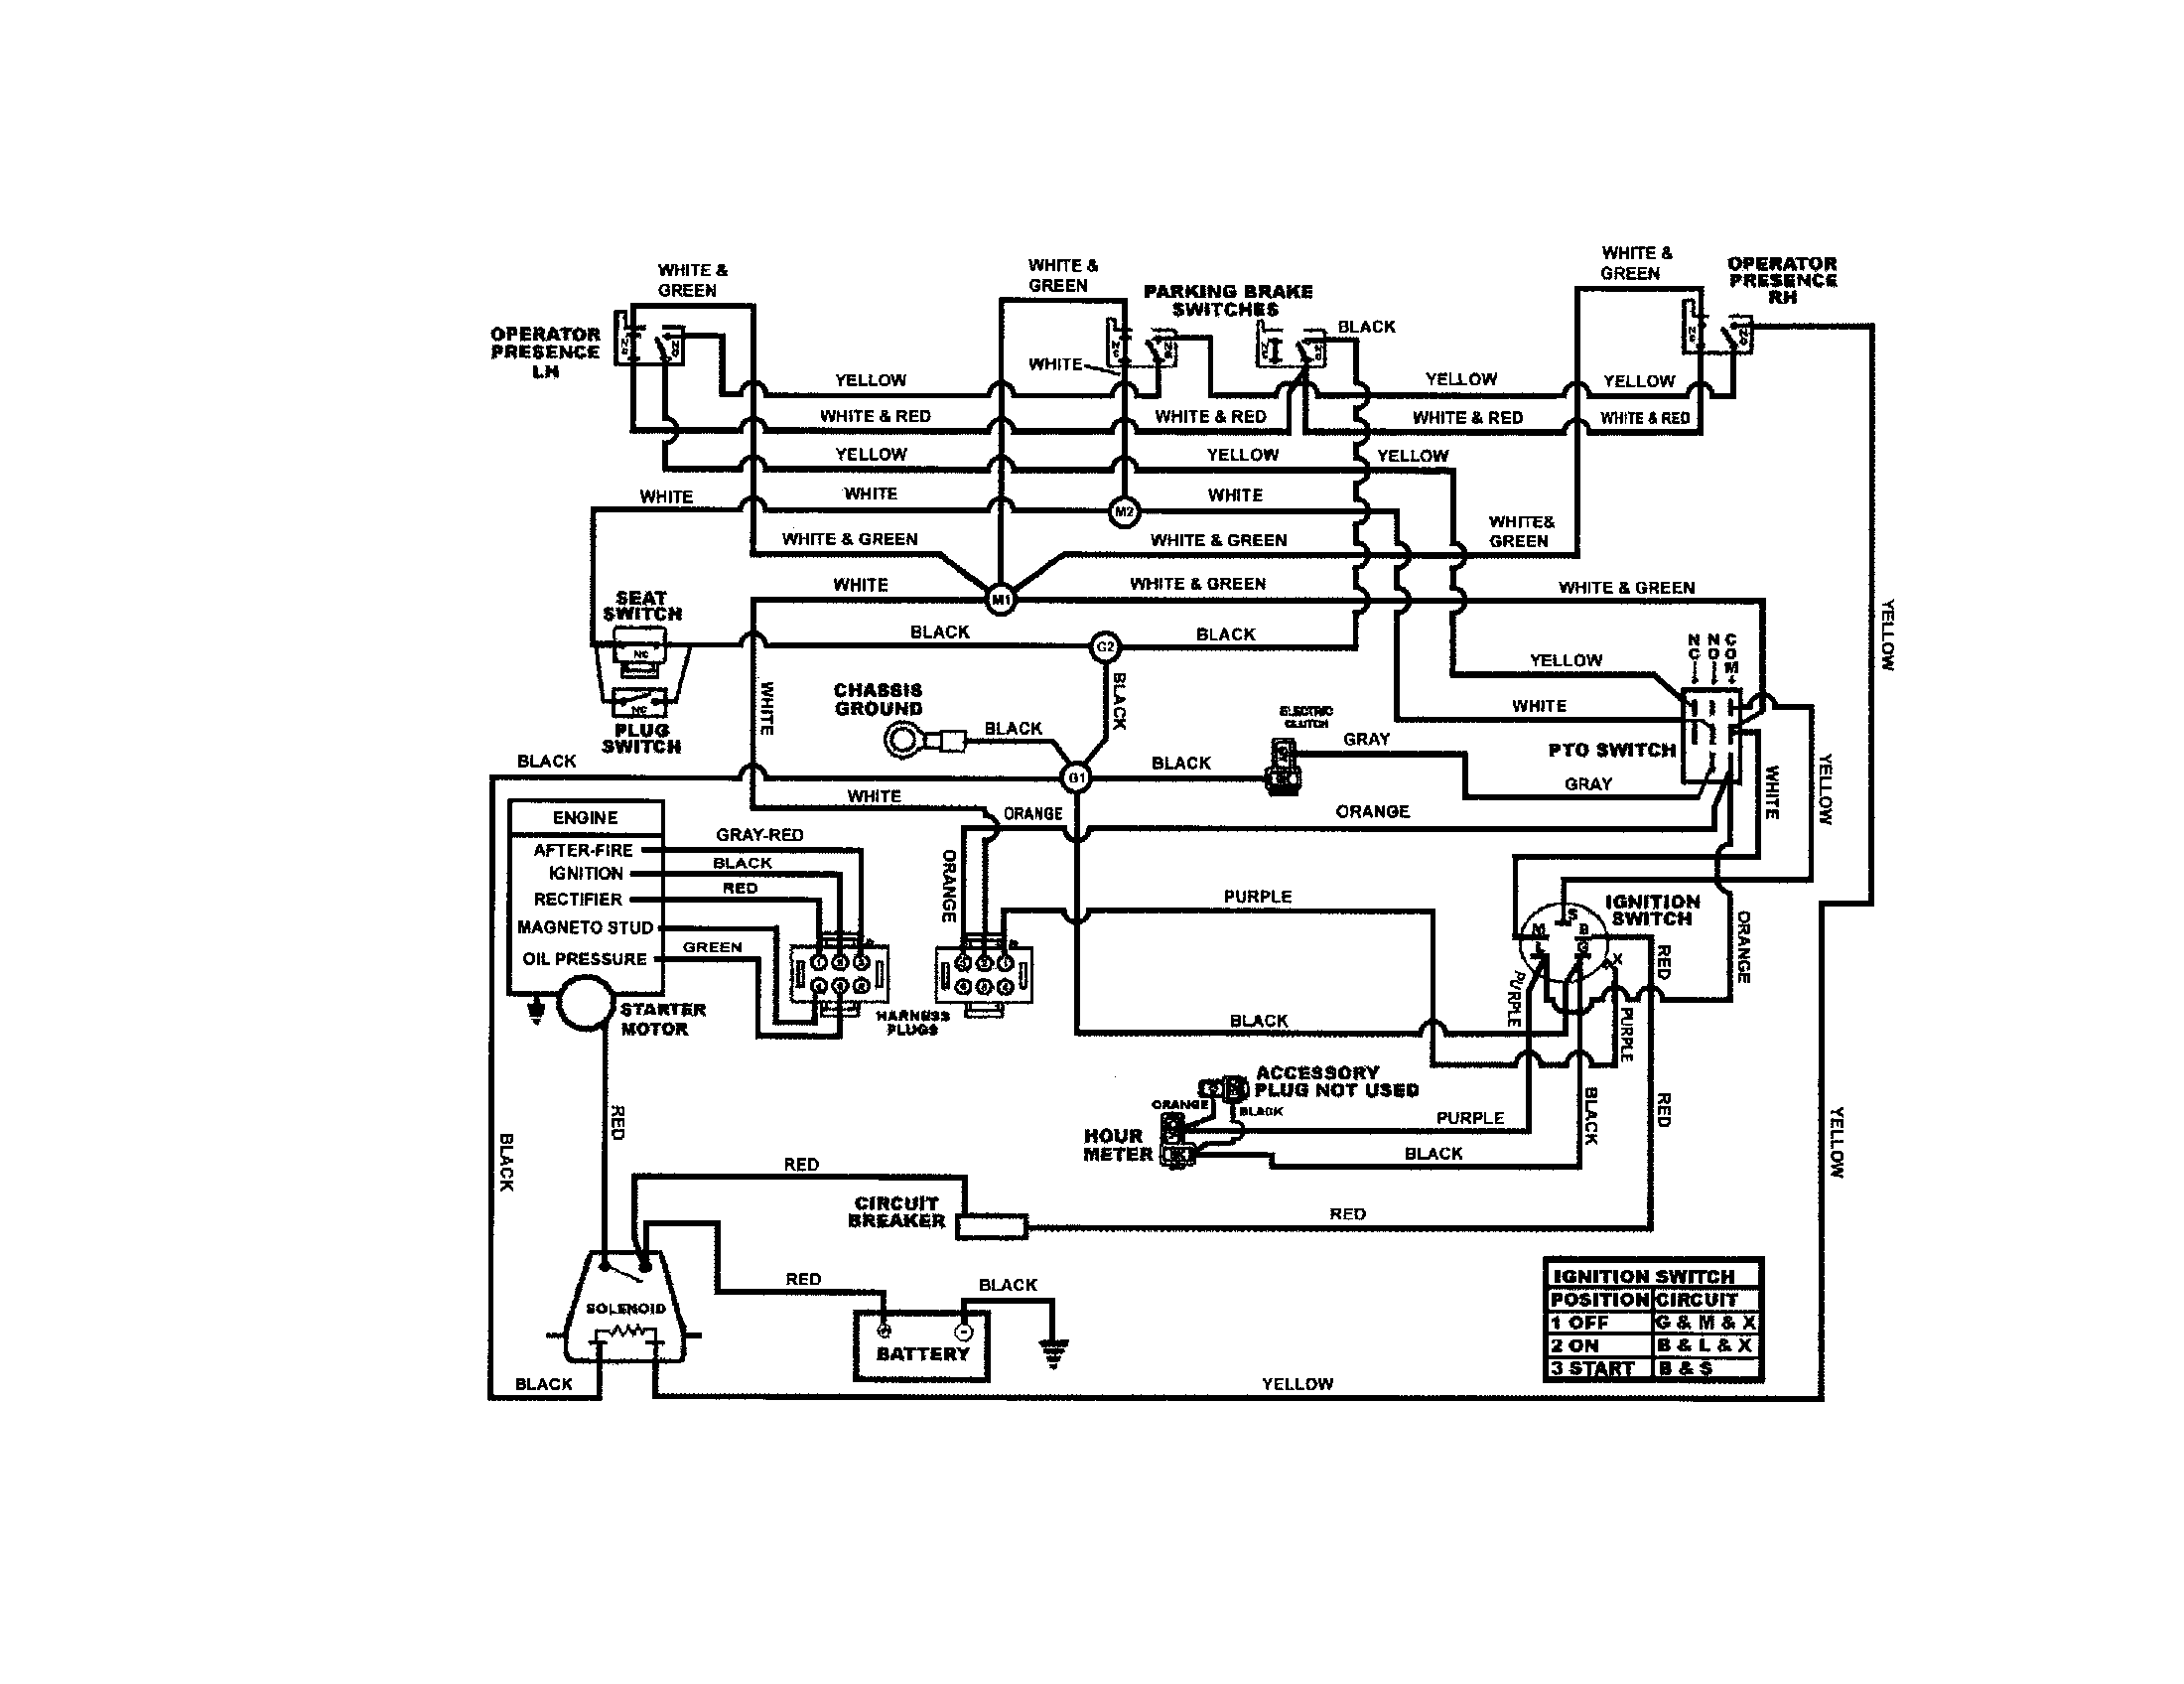 WIRING SCHEMATIC 20 HP Diagram & Parts List for Model